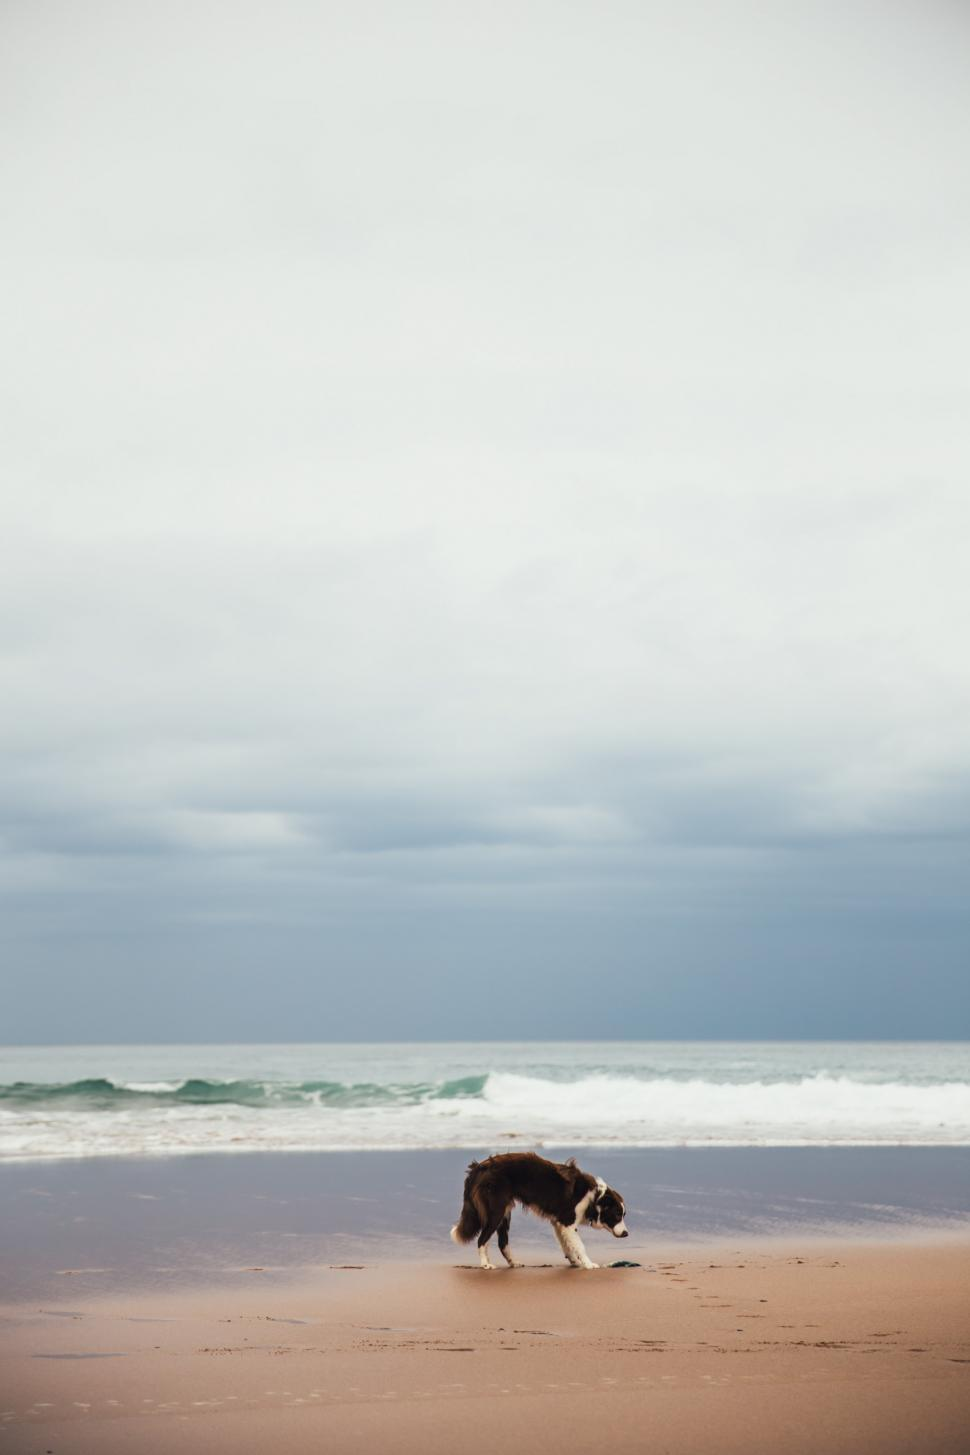 Download Free Stock HD Photo of A dog on the beach Online